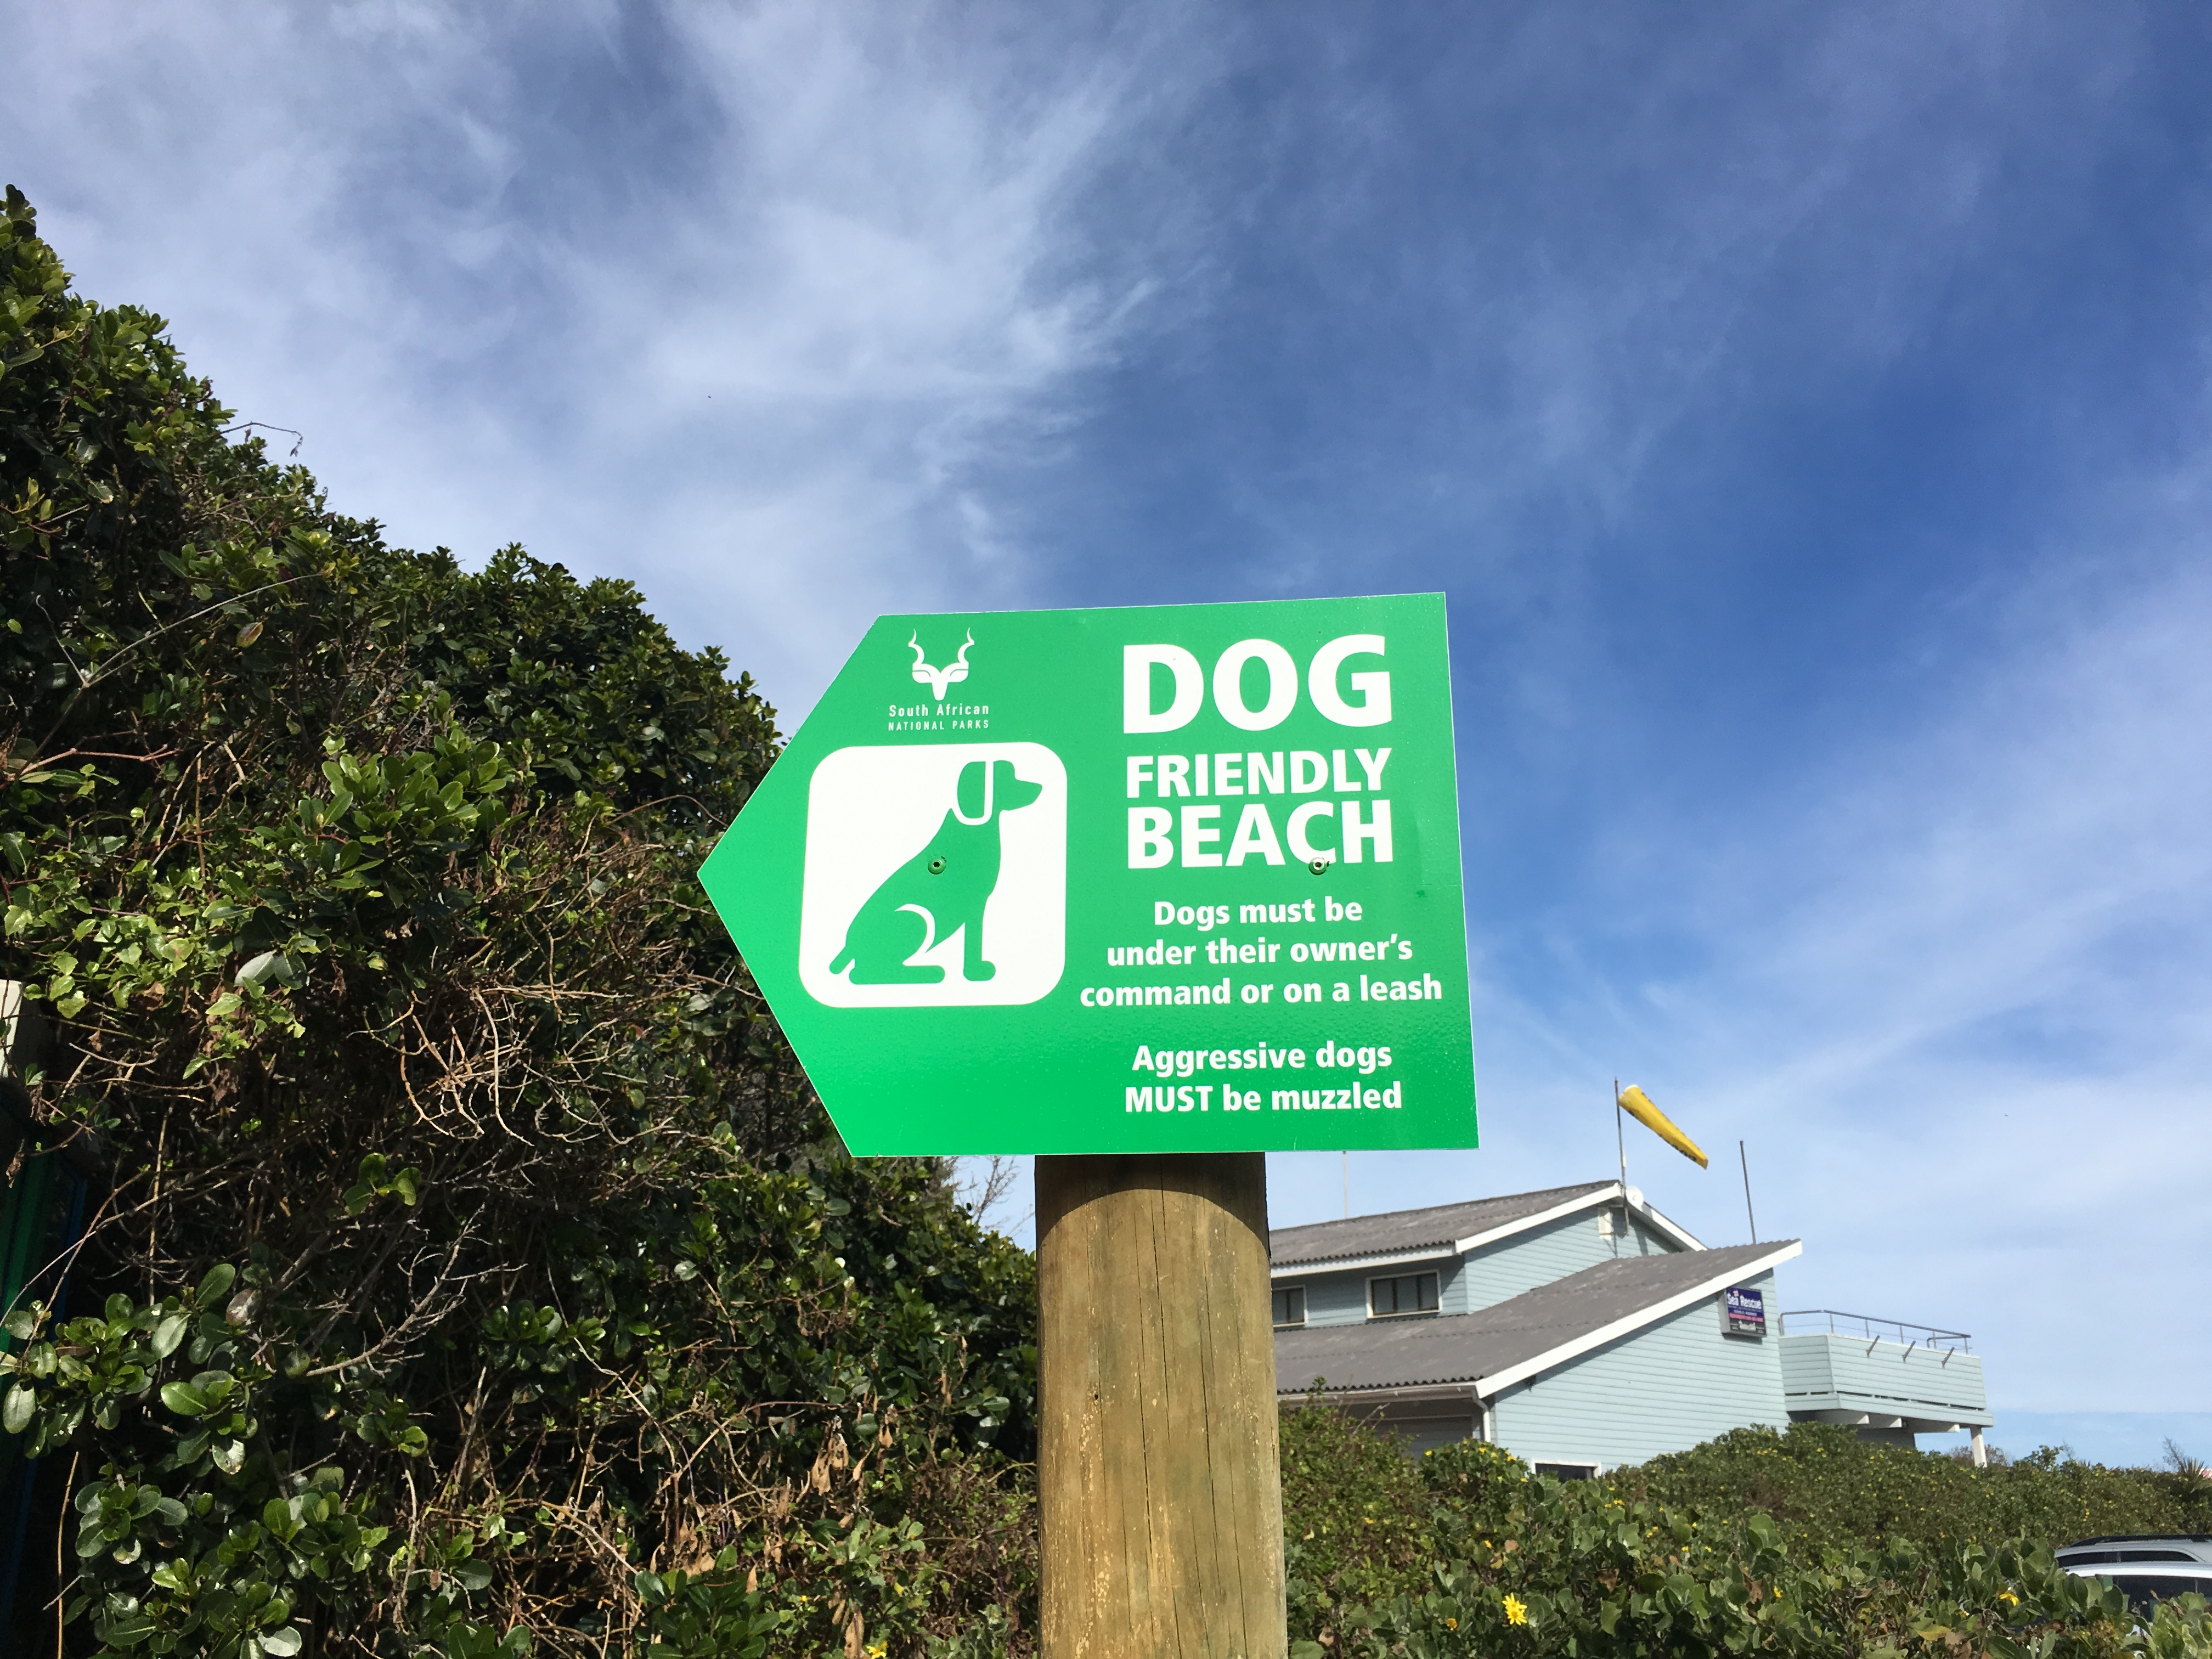 Dog friendly beach in Wilderness